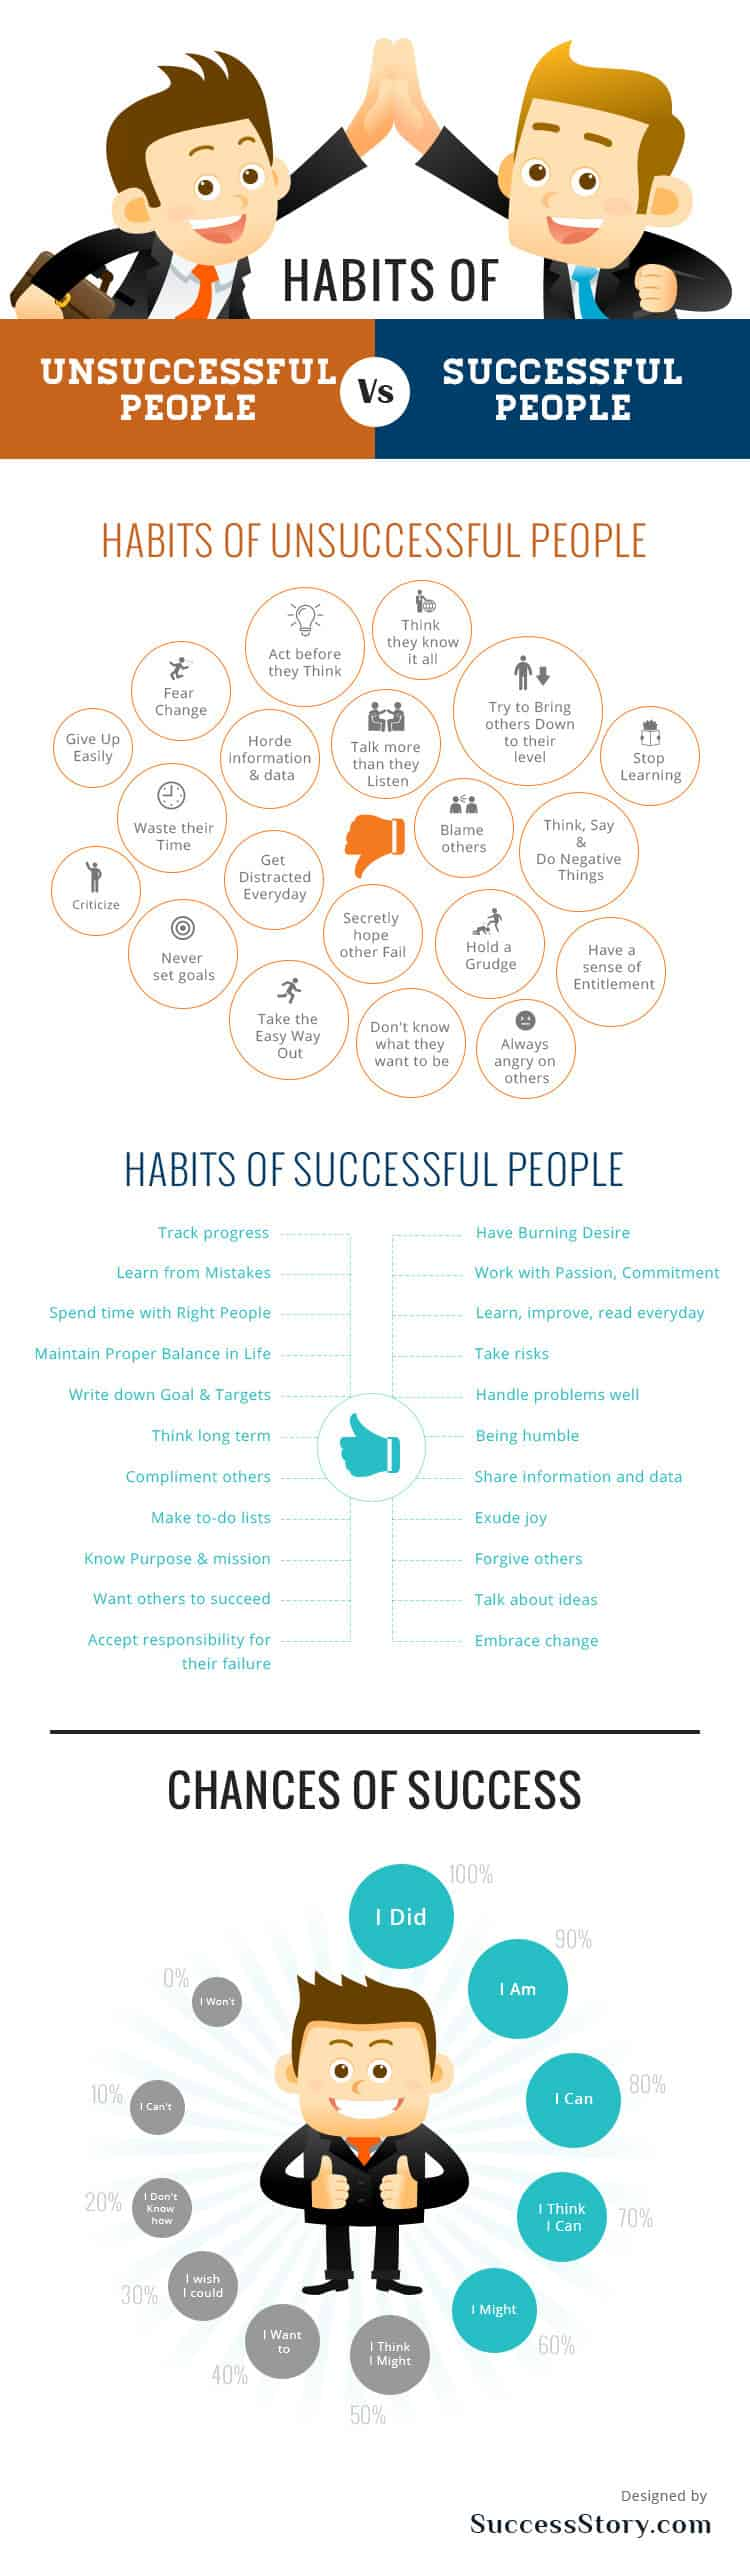 There are successful habits and unsuccessful habits